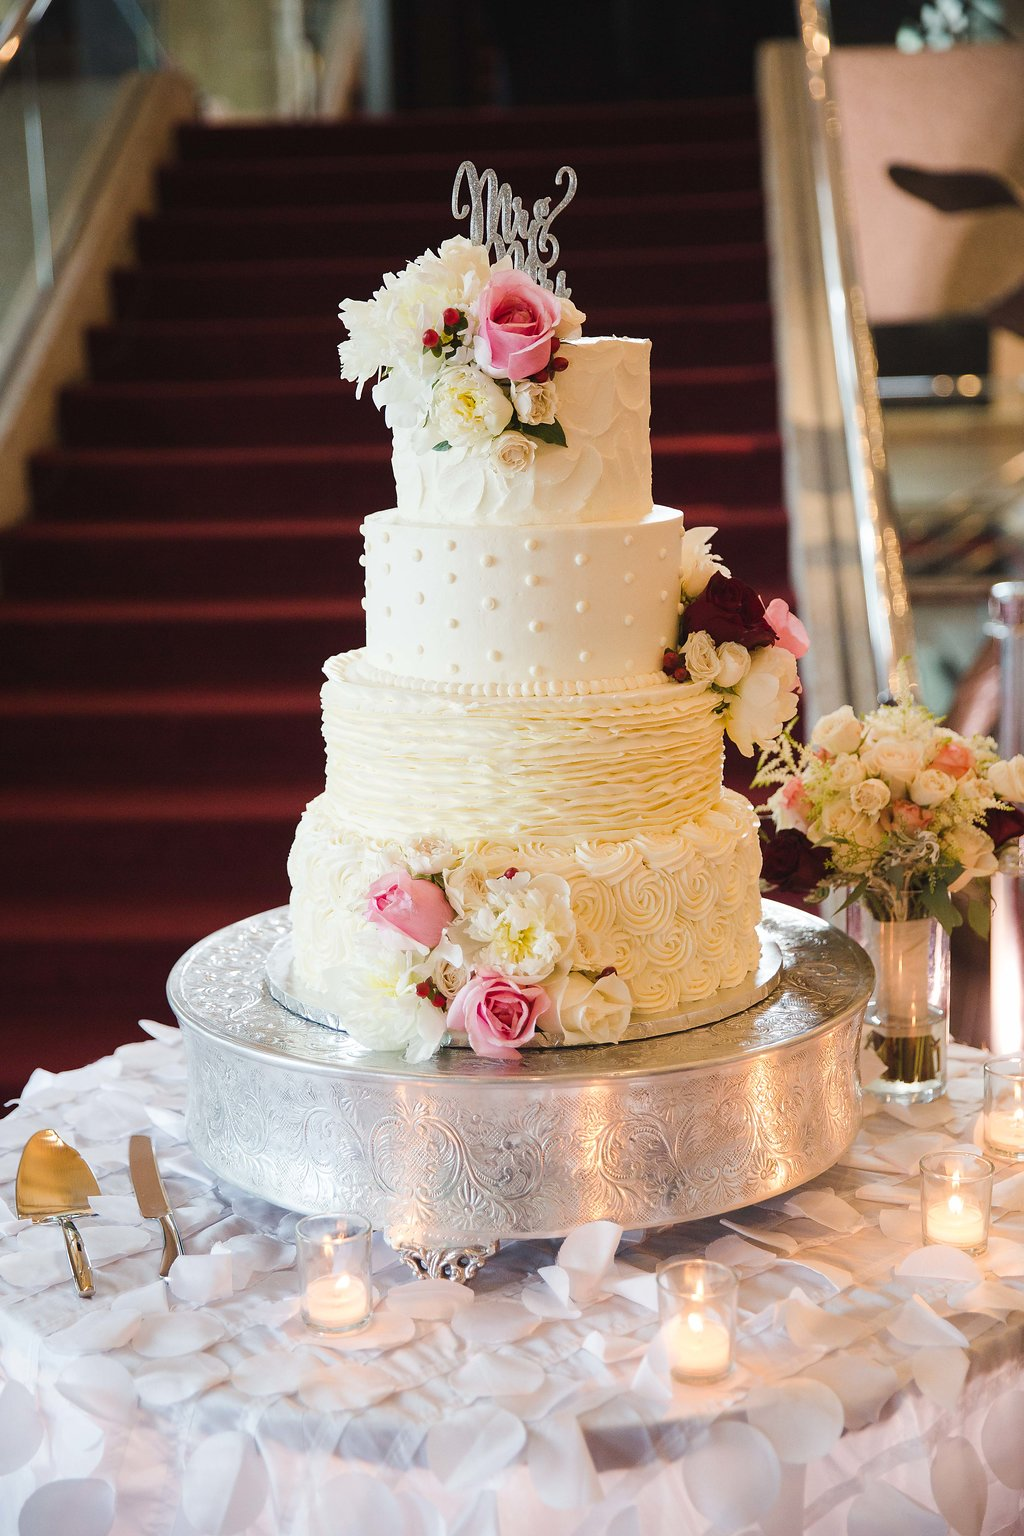 The cake was four layers of hand crafted confection perfection! It featured intricate piping details and complimenting florals, finished off with a silver 'Mr. & Mrs.' topper.